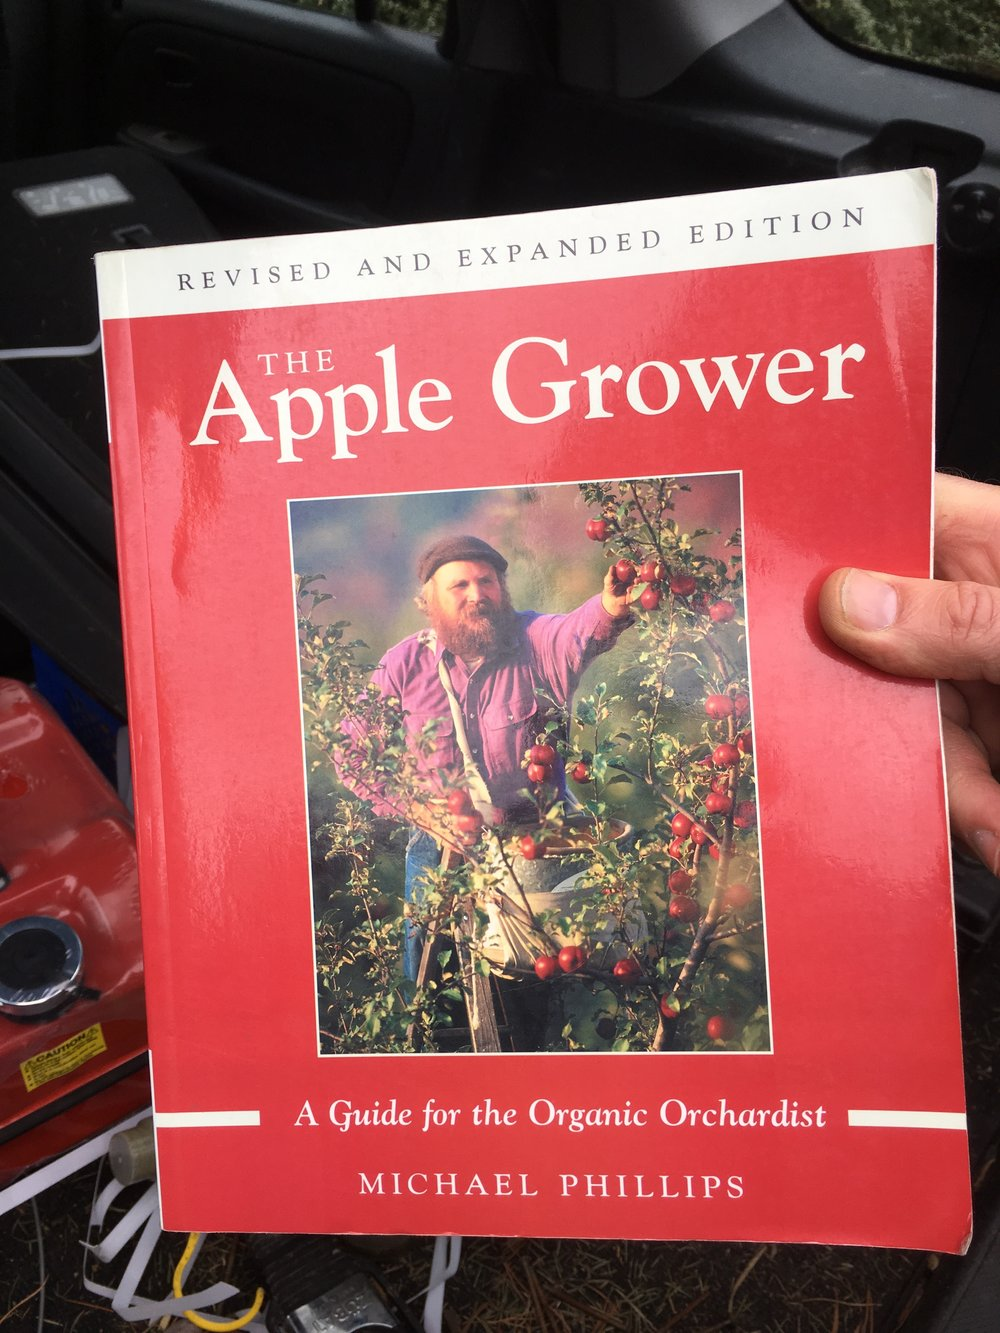 Recommended pruning book